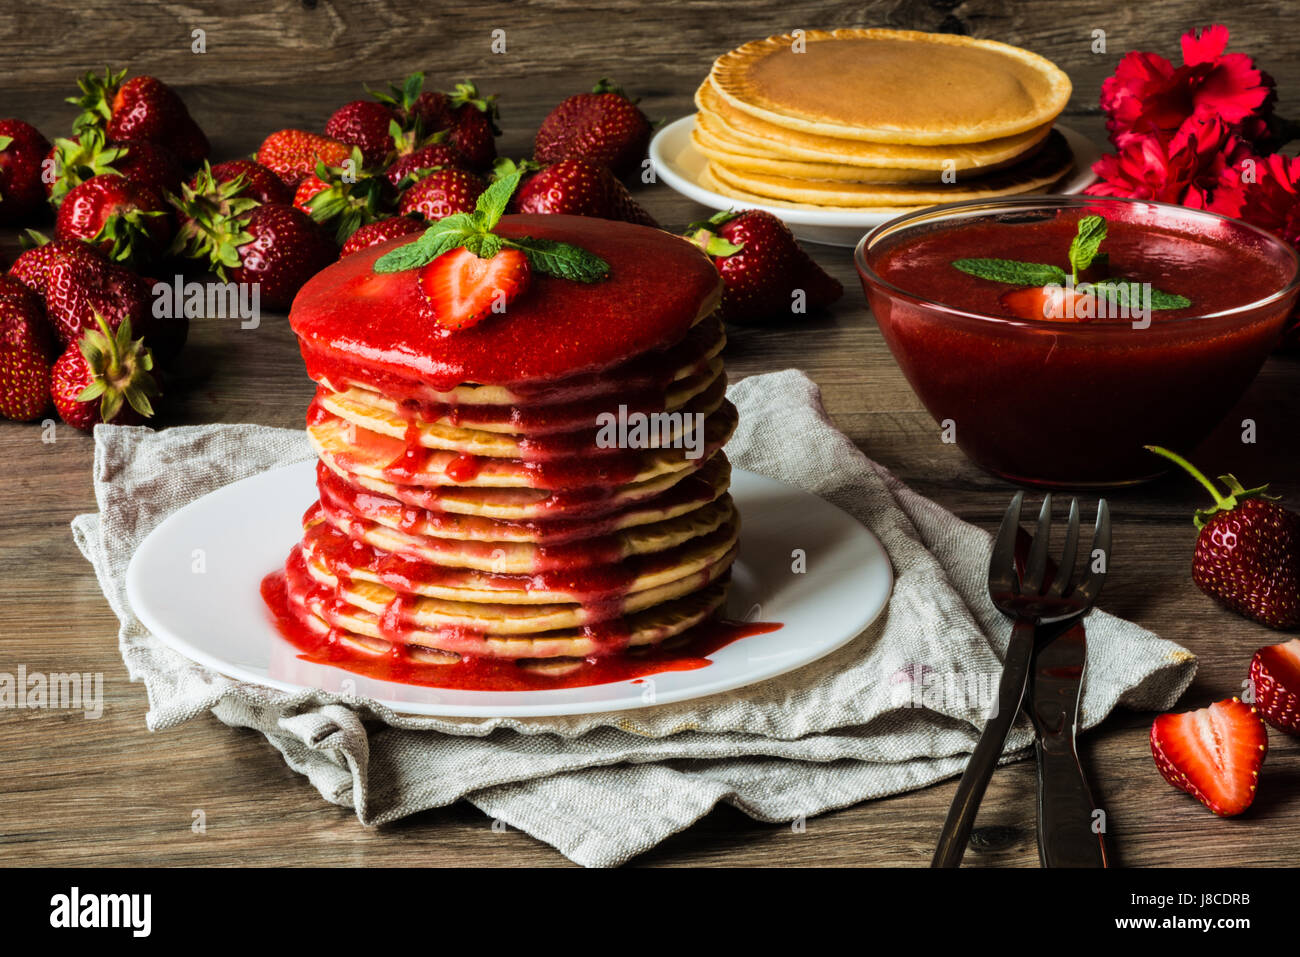 American pancakes and strawberry sauce on a wooden background. Great depth of field. - Stock Image